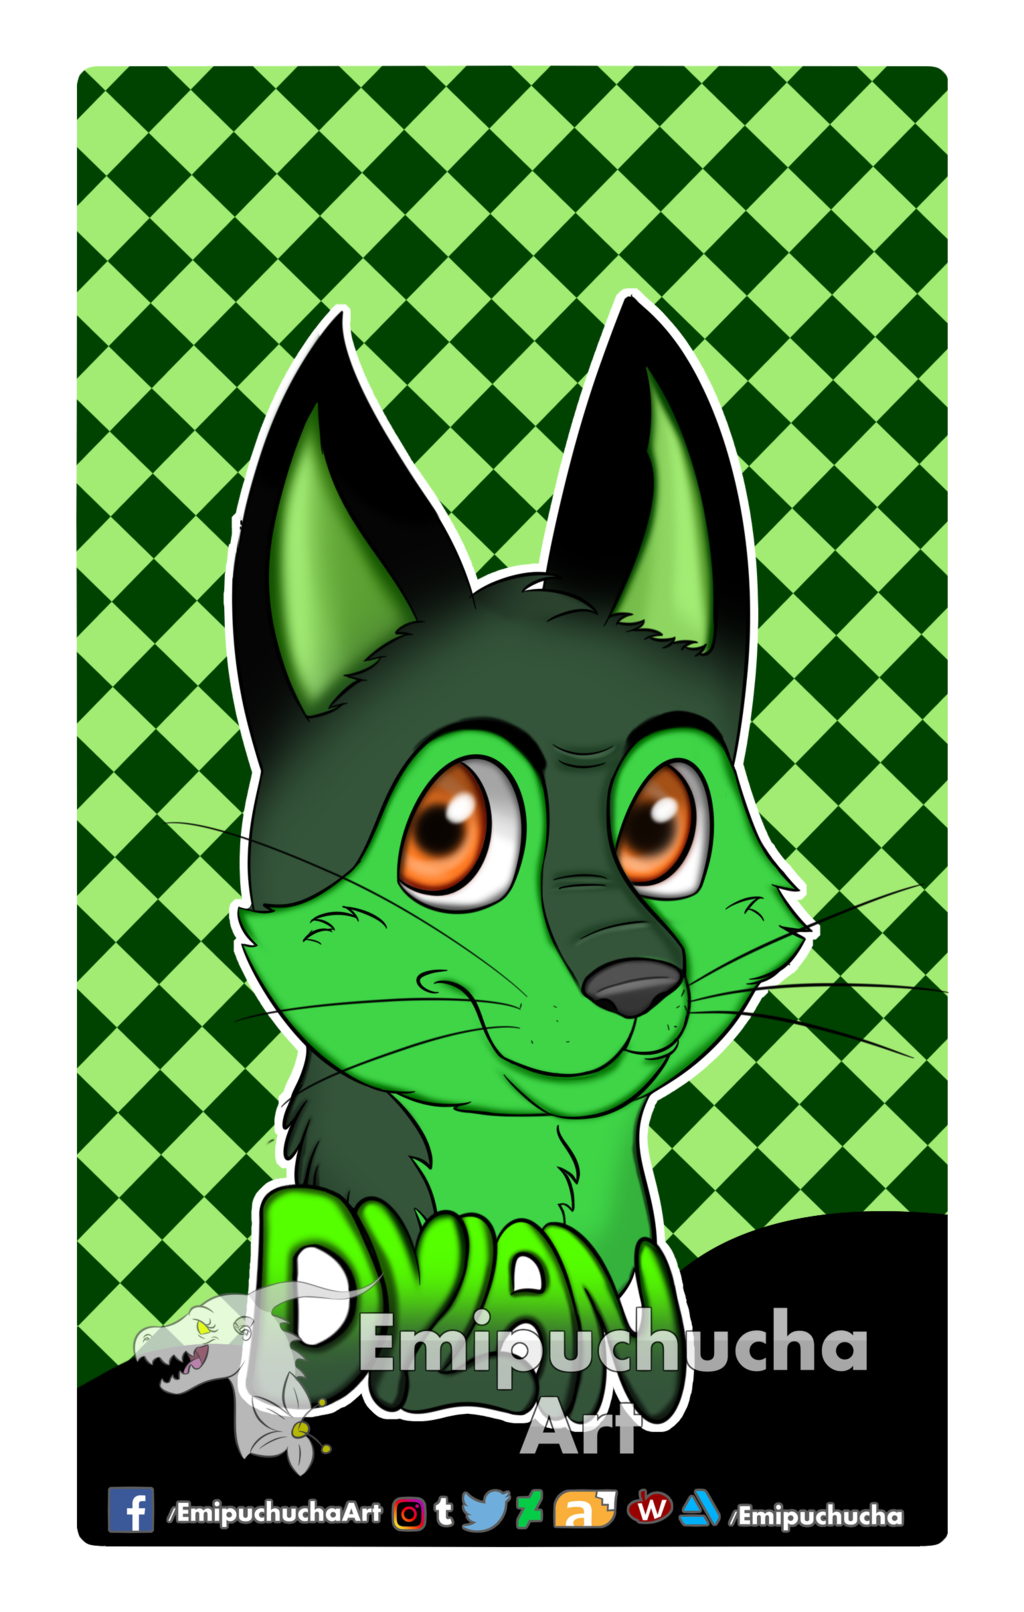 Most recent image: Commission: Dylan's Badge